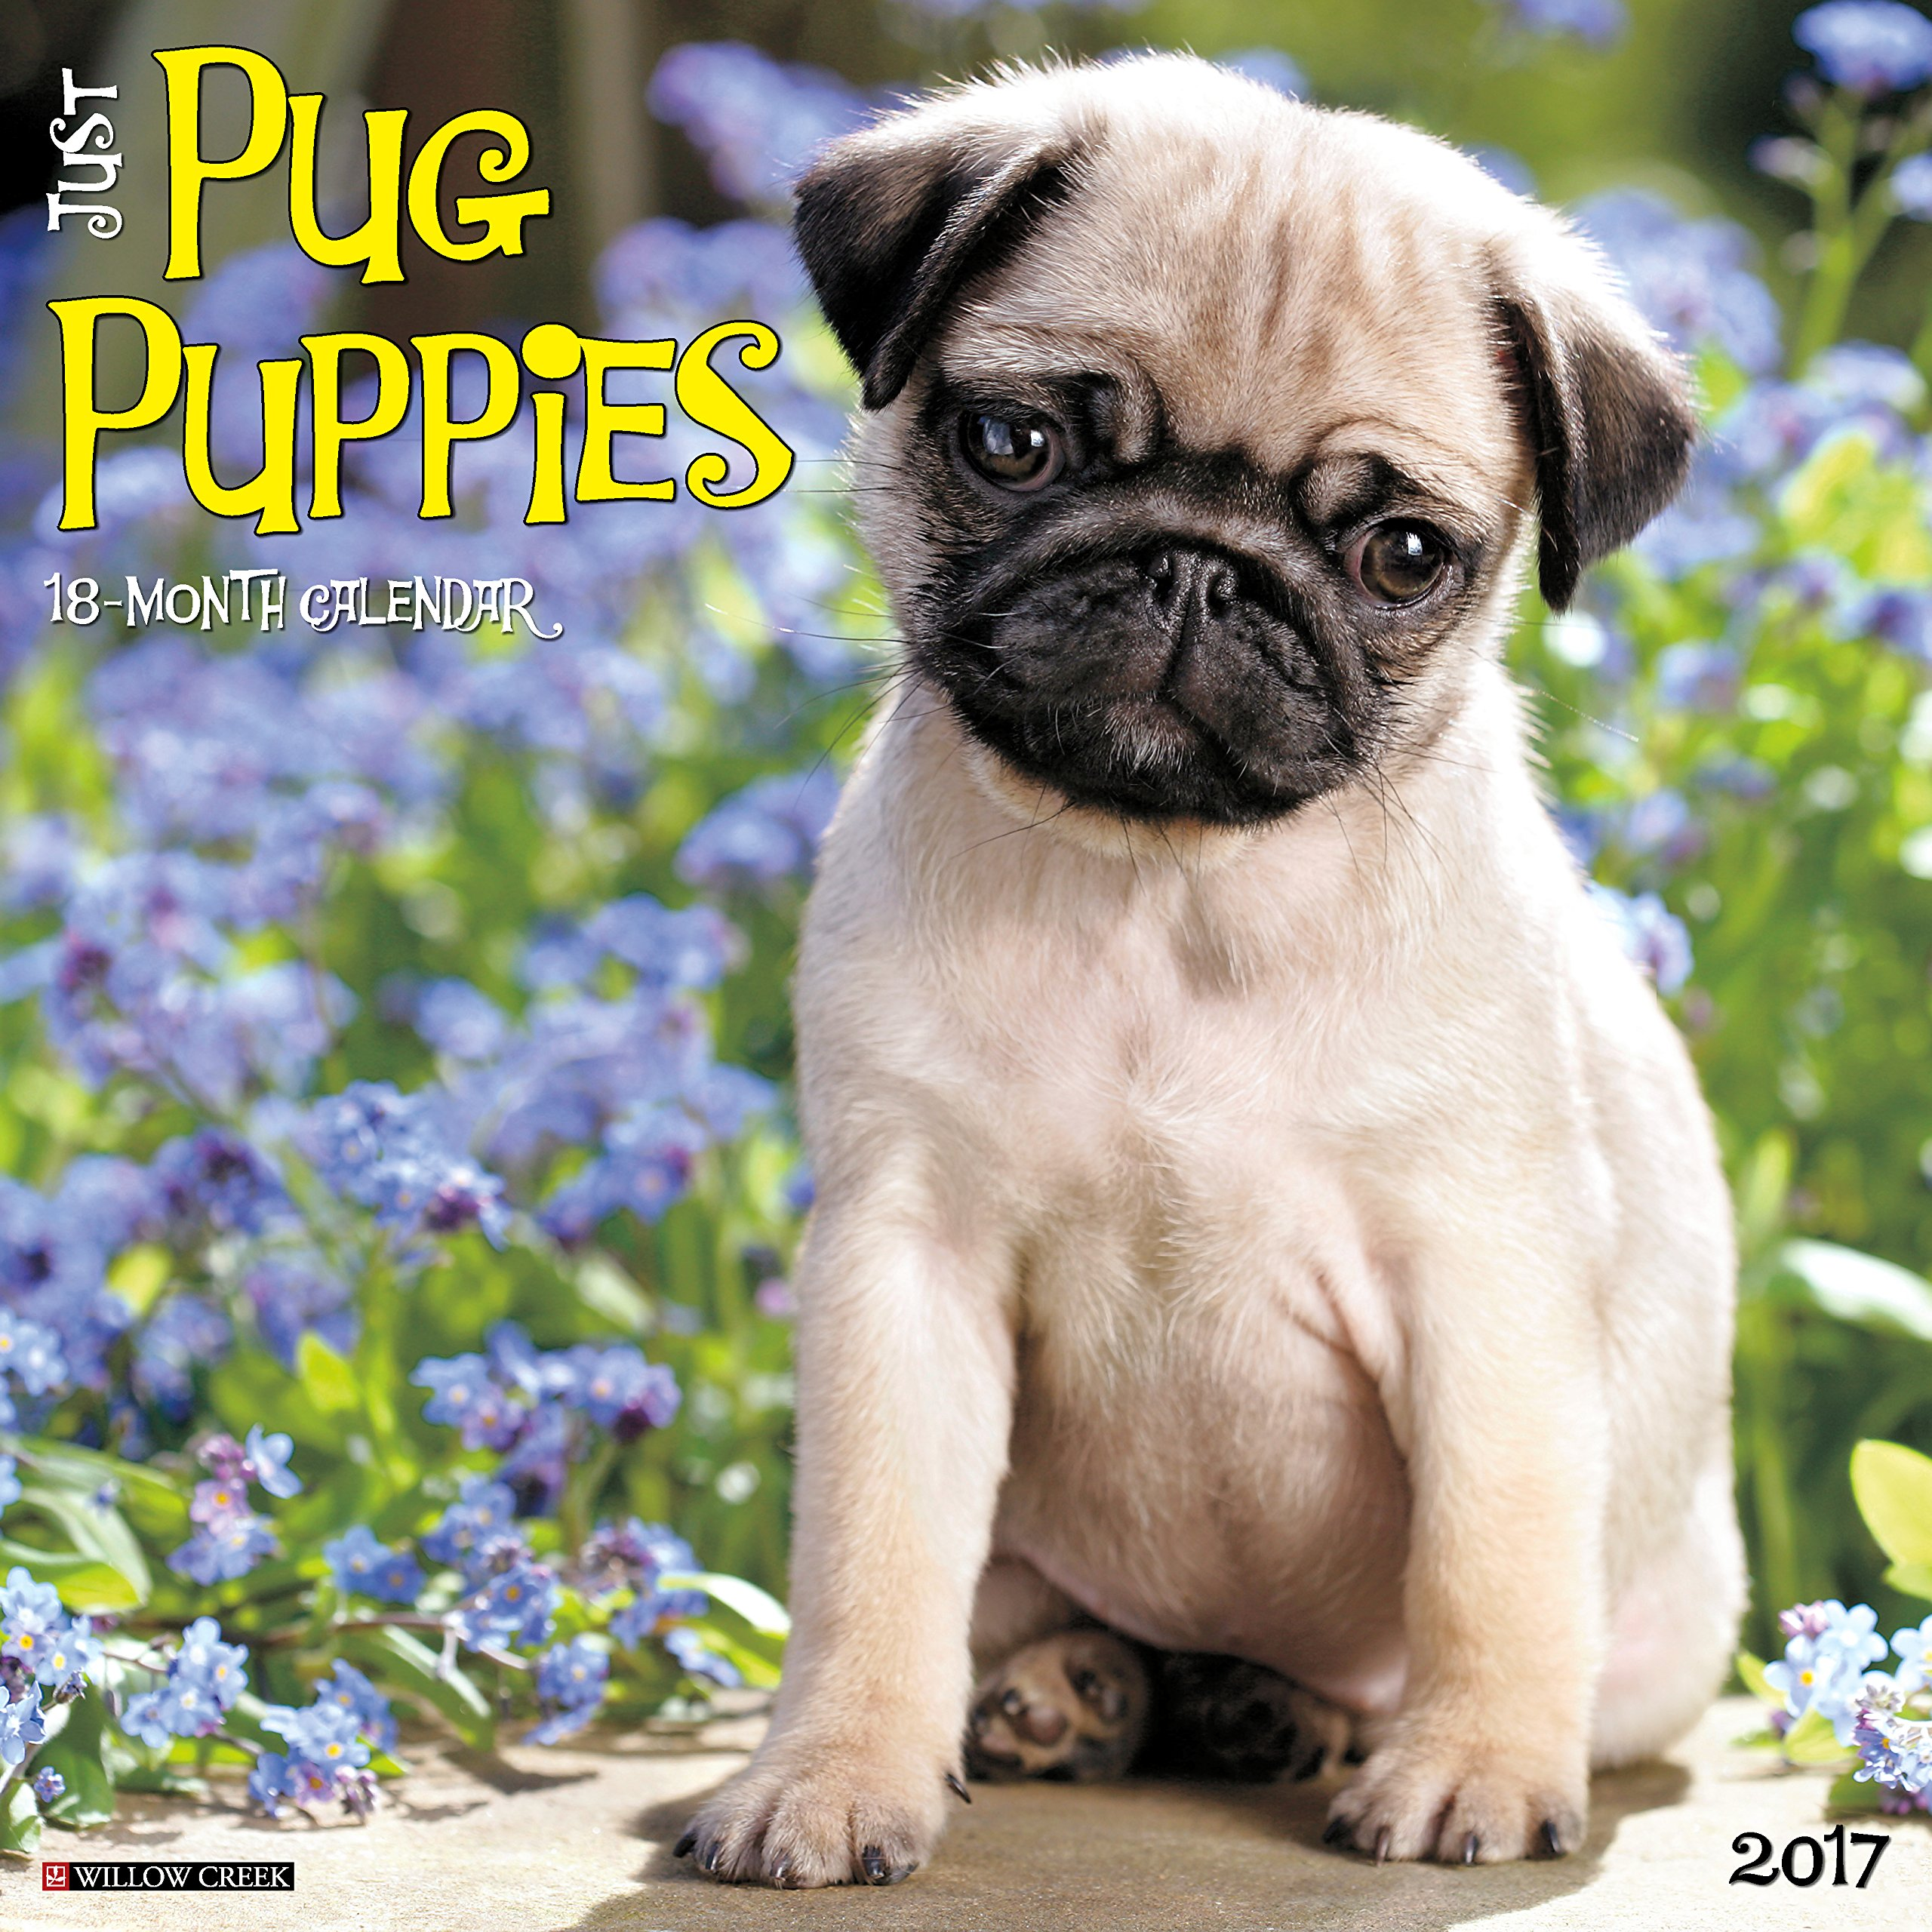 Just pug puppies 2017 wall calendar dog breed calendars willow just pug puppies 2017 wall calendar dog breed calendars willow creek press 9781682341742 amazon books nvjuhfo Images